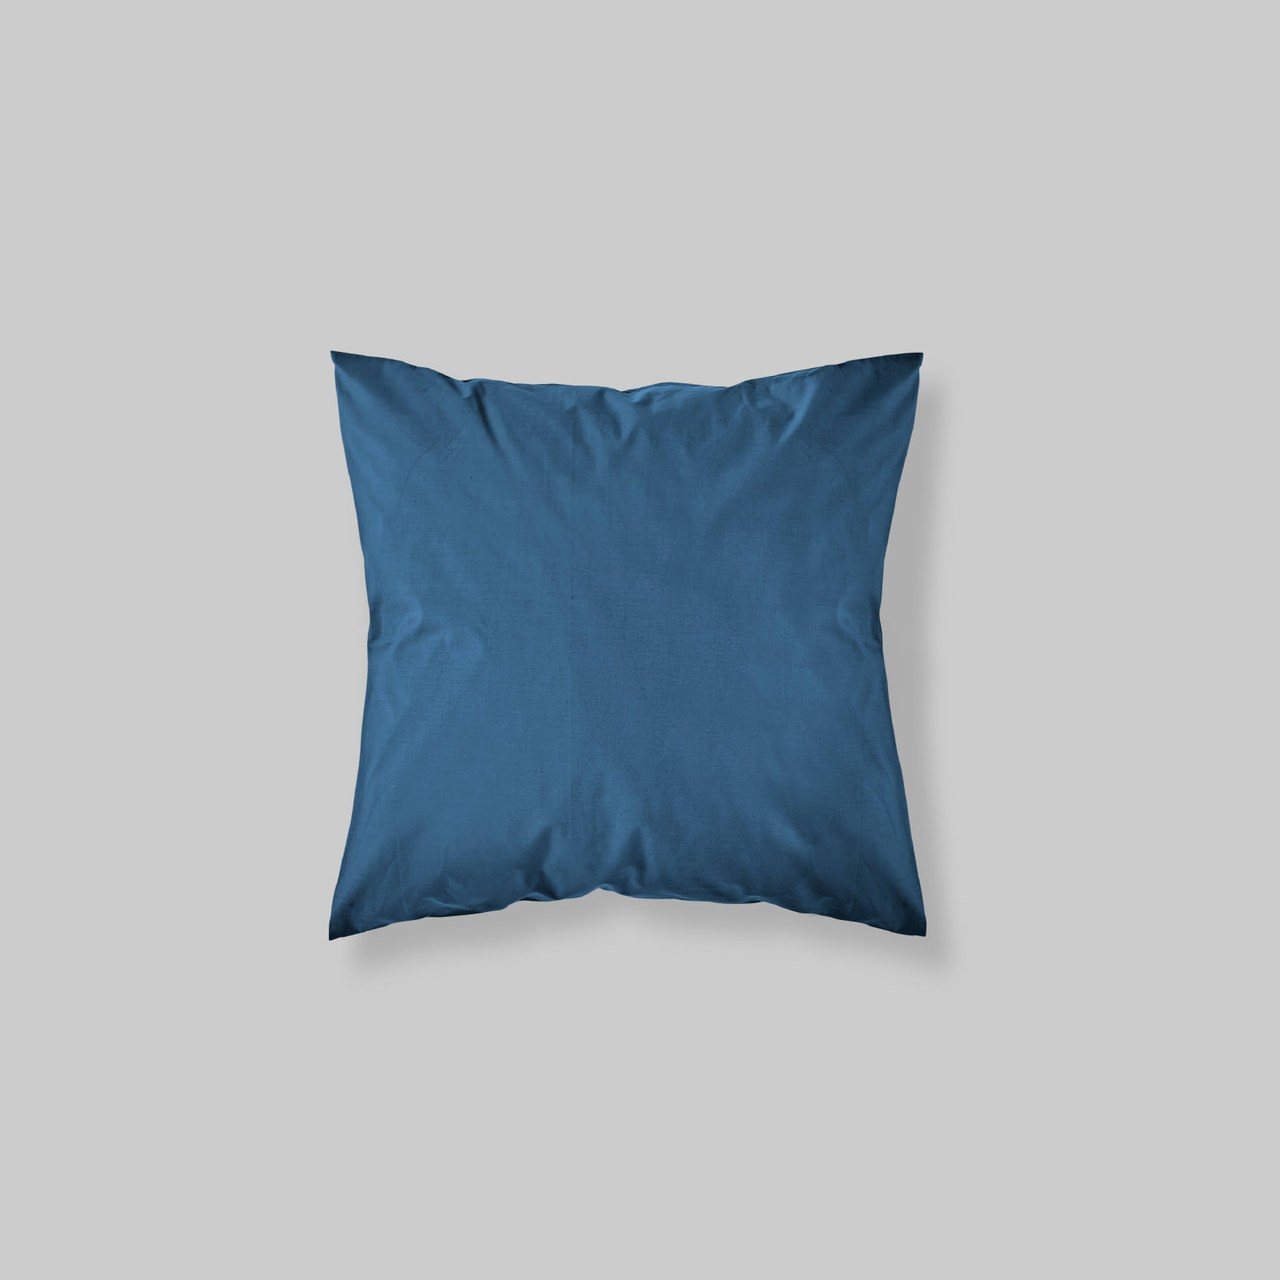 EURO SHAM PAIR SOLID COLOR NAVY BLUE